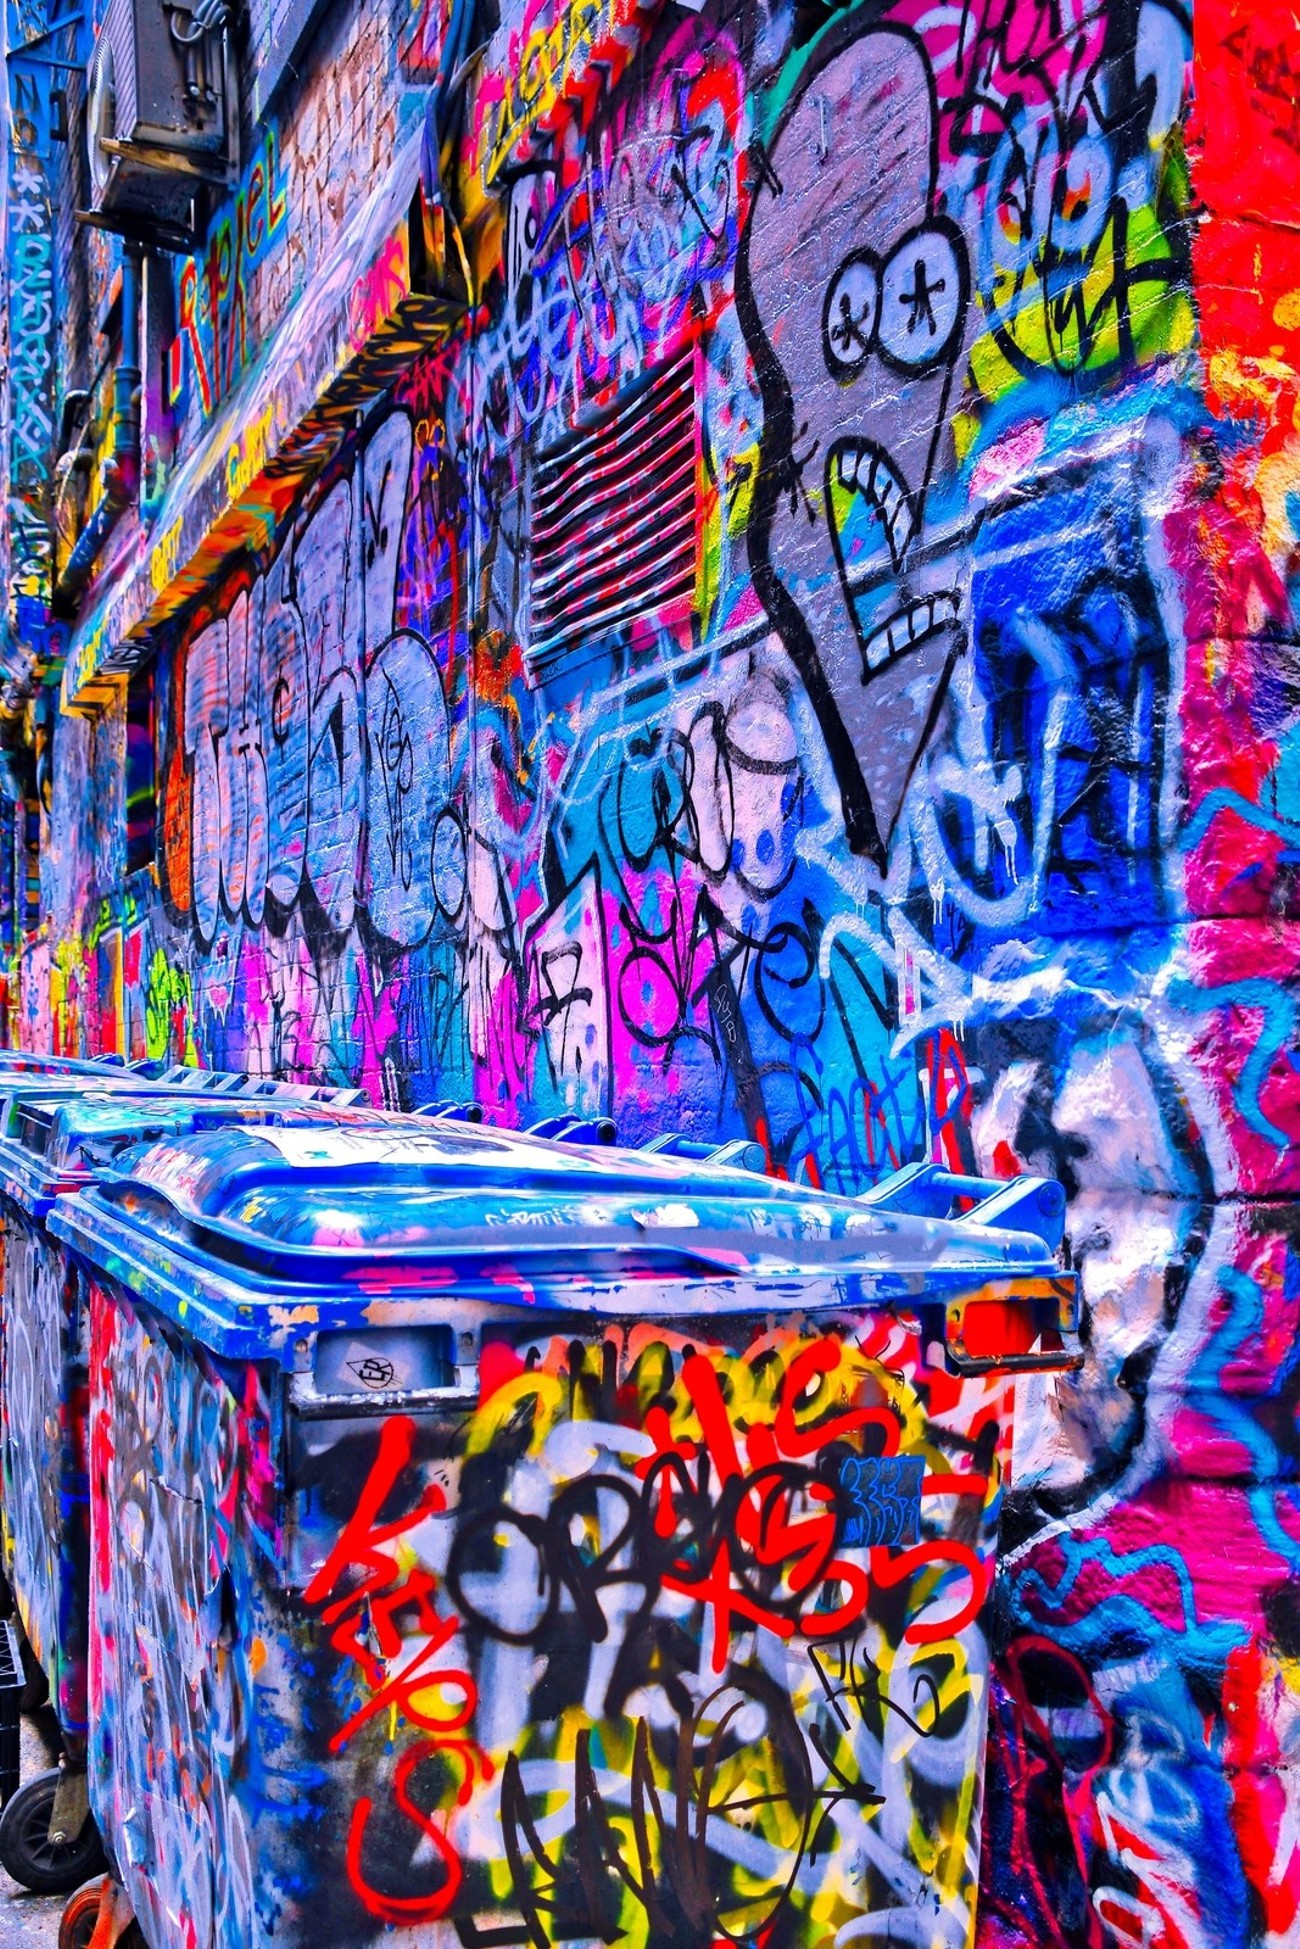 Another fine example of the famous  street art found in the alleys of downtown Melbourne, Australia.  Nothing is sacred from being painted or being the subject of the street artists.